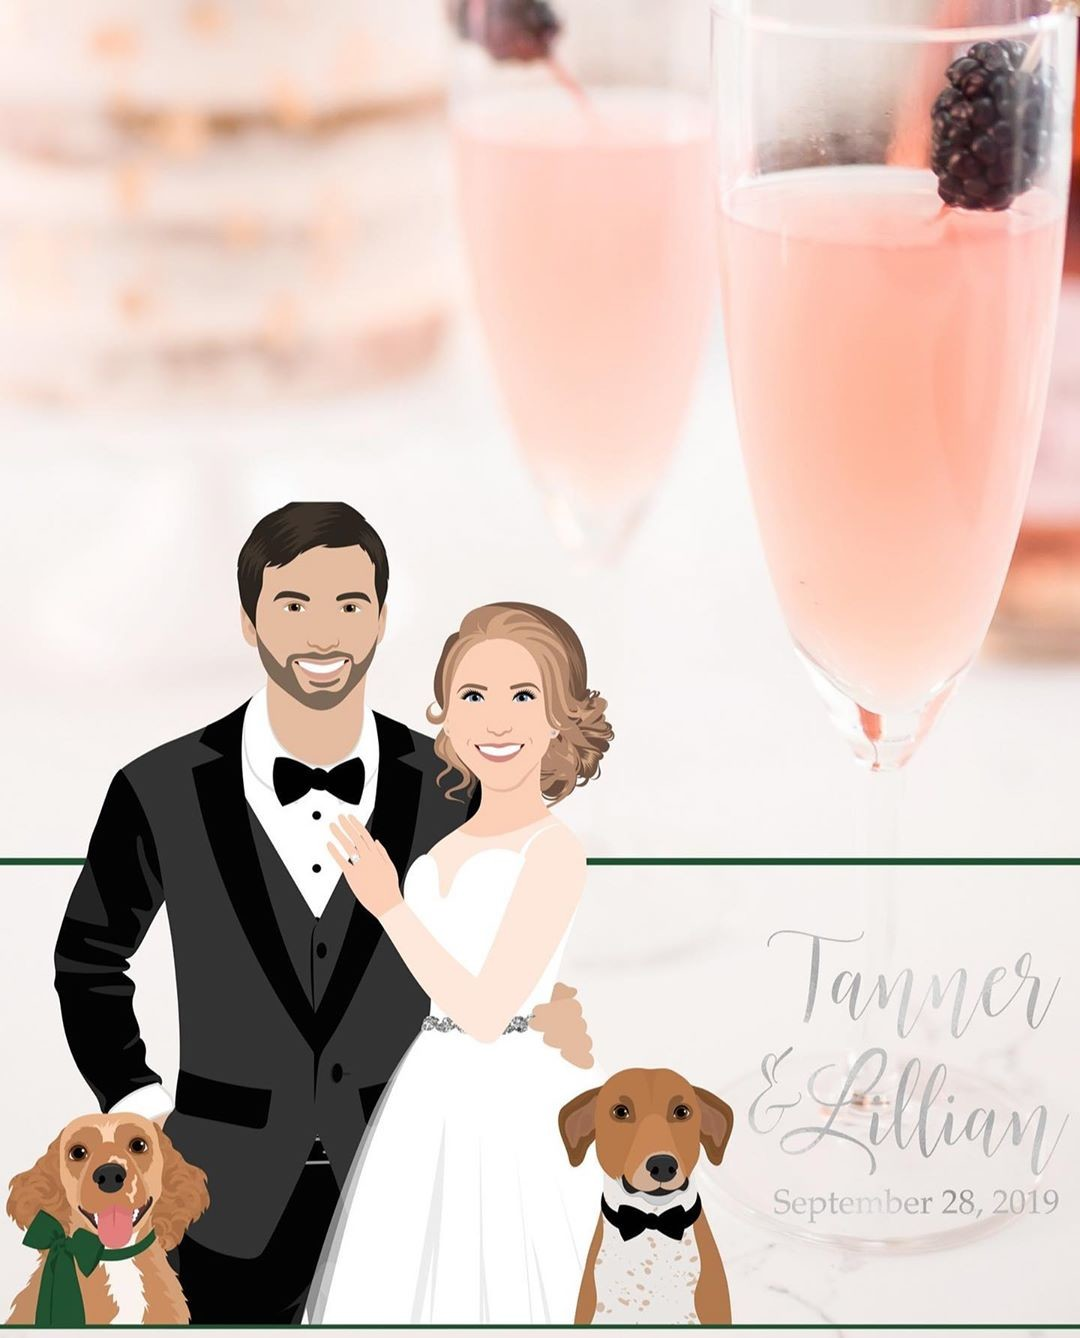 Tanner and Lillian are getting married today, and isn't this family just so lovely?? 🐾 It's no wonder they chose a custom Snapchat